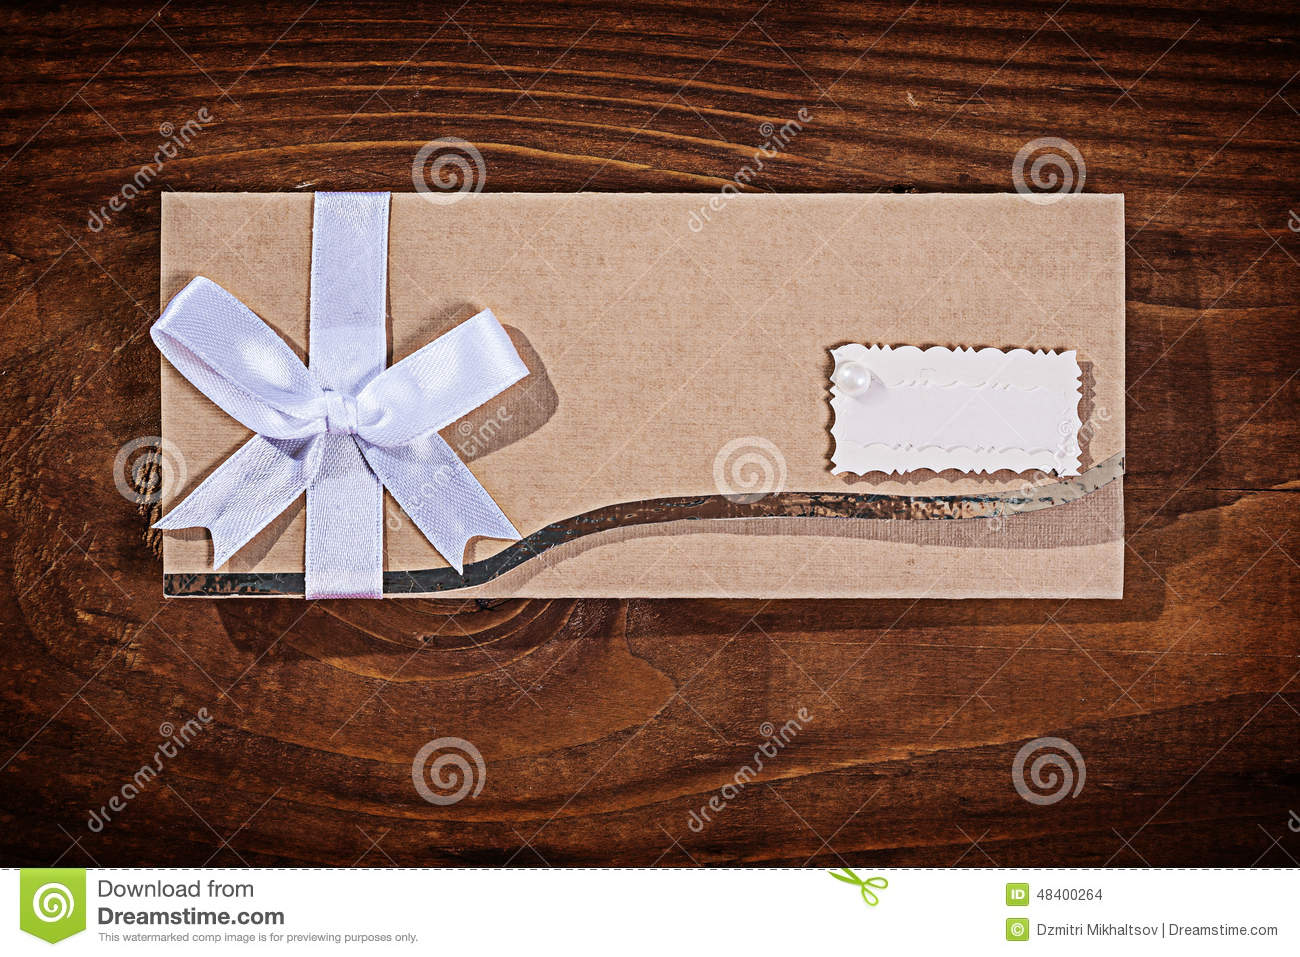 stock photo wedding invitation envelope old wooden board image wedding invitation envelopes Light brown wedding invitation envelope on old wooden board Stock Images